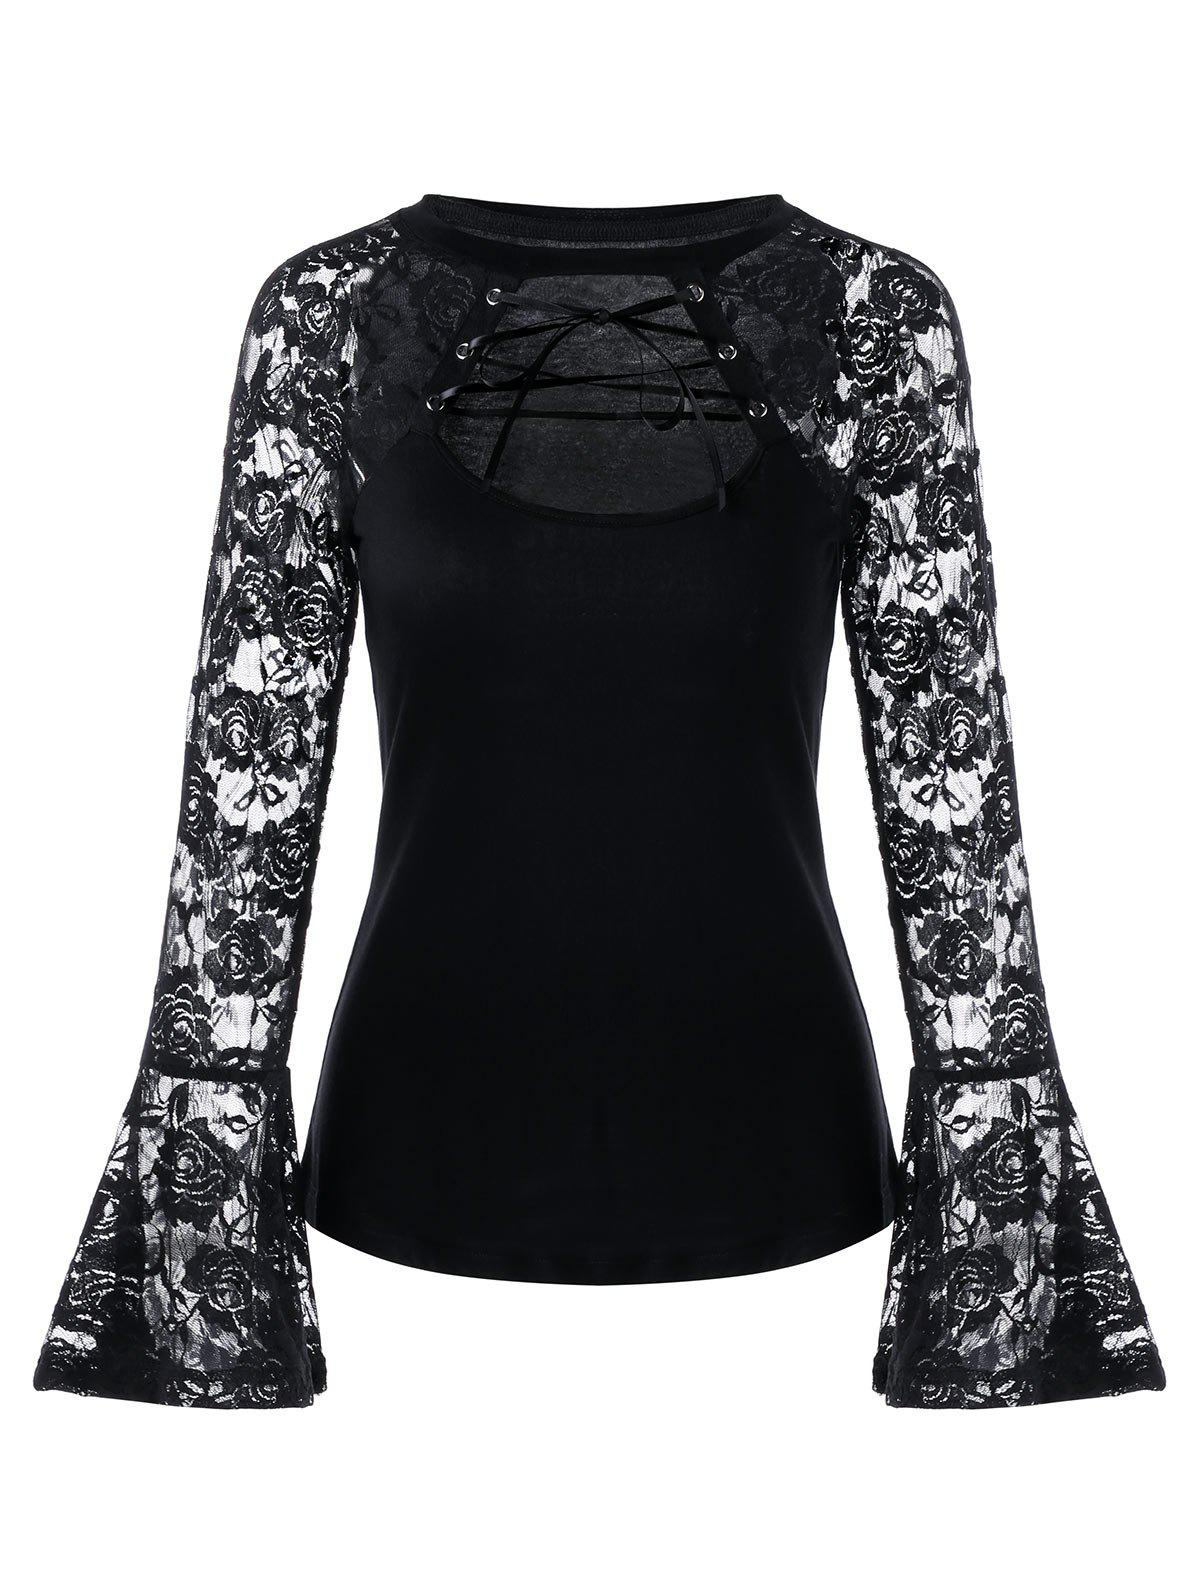 Cut Out Lace-up Flare Sleeve Lace TopWOMEN<br><br>Size: L; Color: BLACK; Material: Cotton,Cotton Blends; Shirt Length: Regular; Sleeve Length: Full; Collar: Round Neck; Style: Fashion; Pattern Type: Solid; Season: Fall,Spring; Weight: 0.2060kg; Package Contents: 1 x Top;